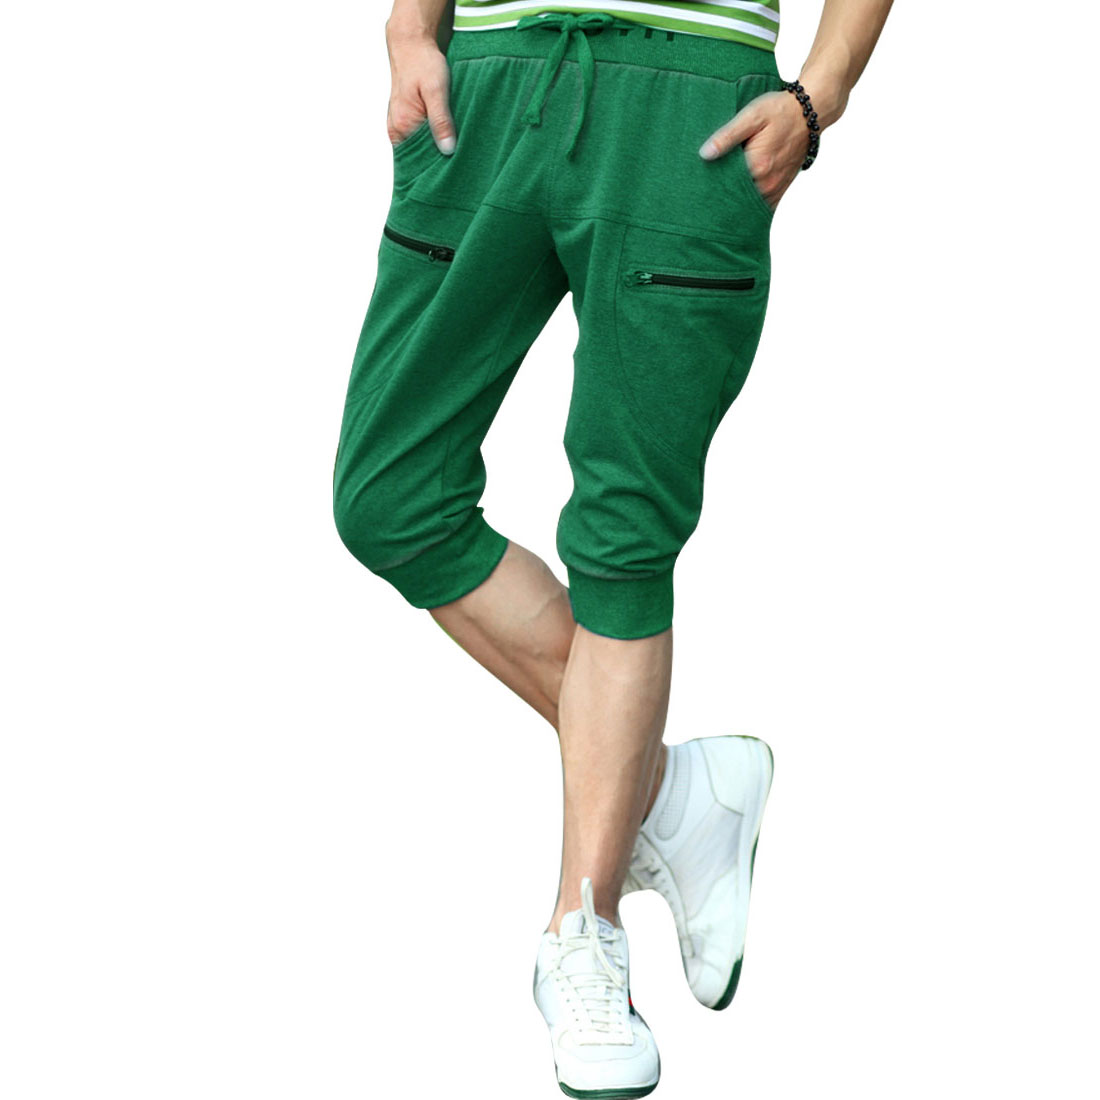 Men Front Slant Pockets Drawstring Waist Back Pockets Shorts Green W31